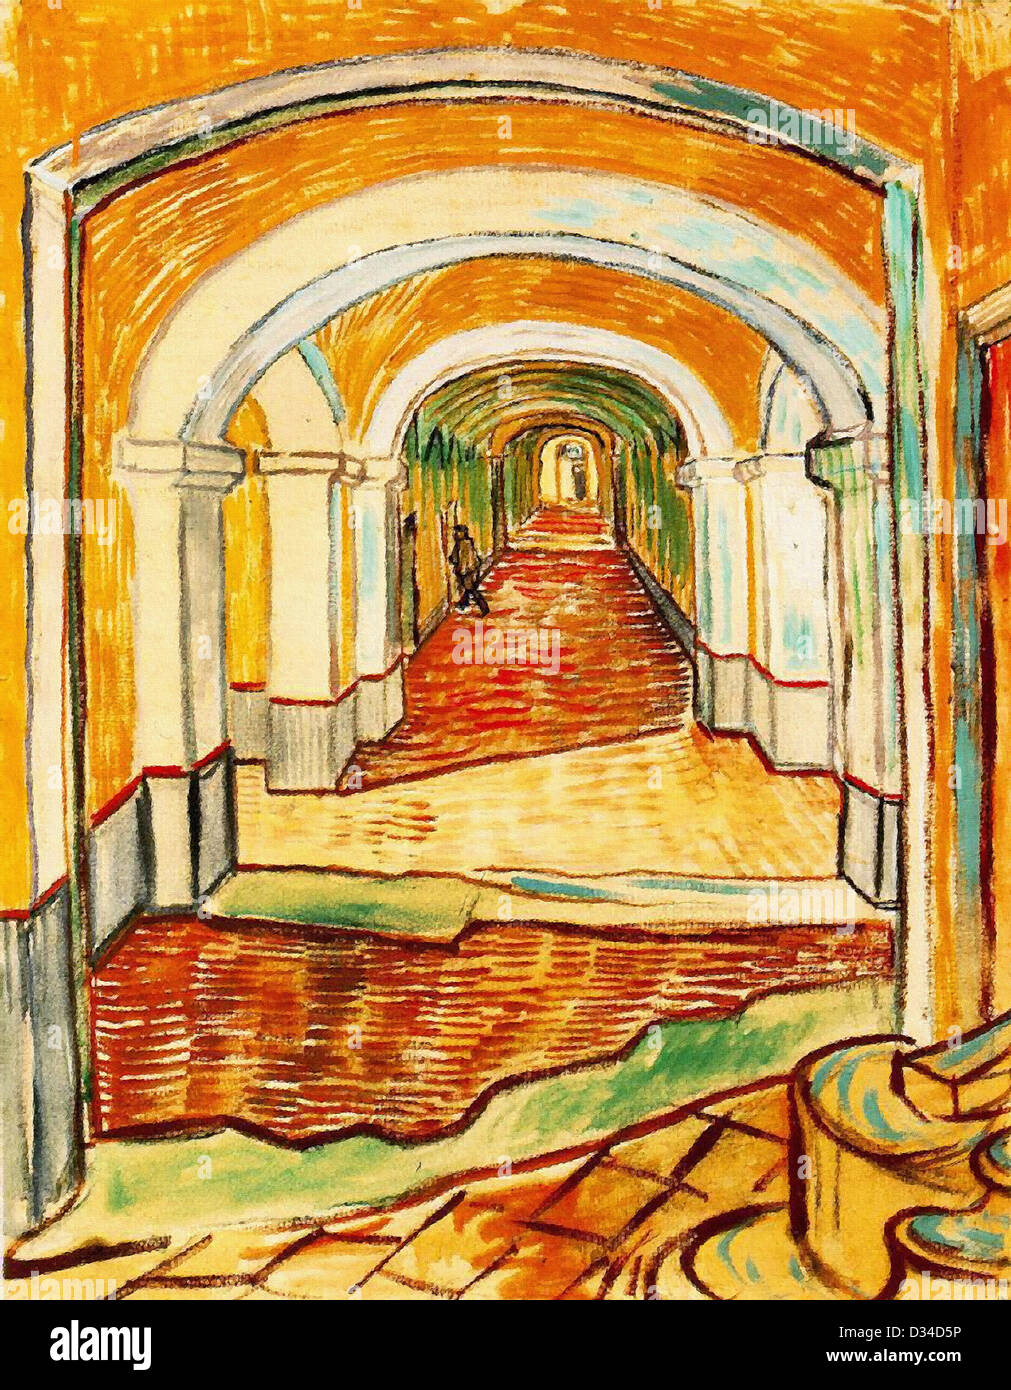 Vincent van Gogh, Corridor in the asylum. 1889. Post-Impressionism. Oil on canvas. Museum of Modern Art, New York, - Stock Image